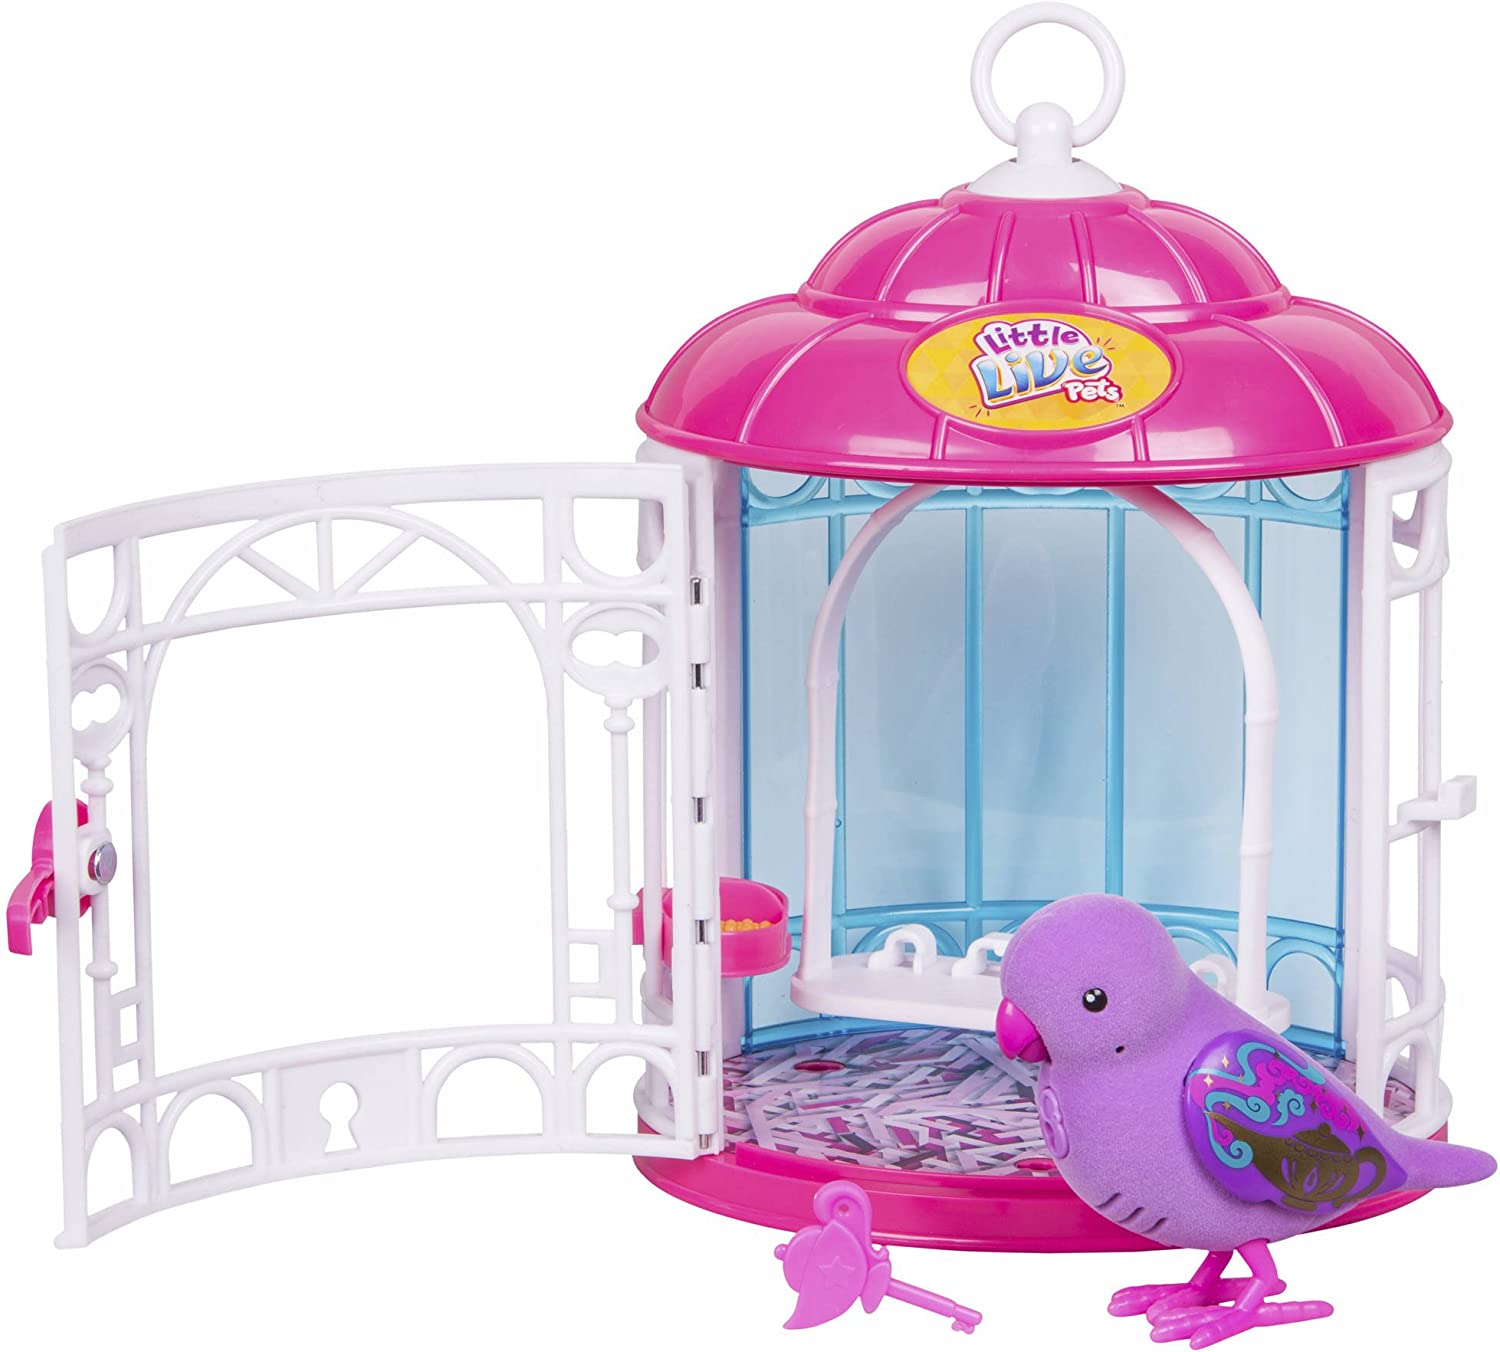 little live pets Pajaritos Parlanchines Con Su Jaula. Serie 7. Dreamy Genie (Famosa) (700013973)